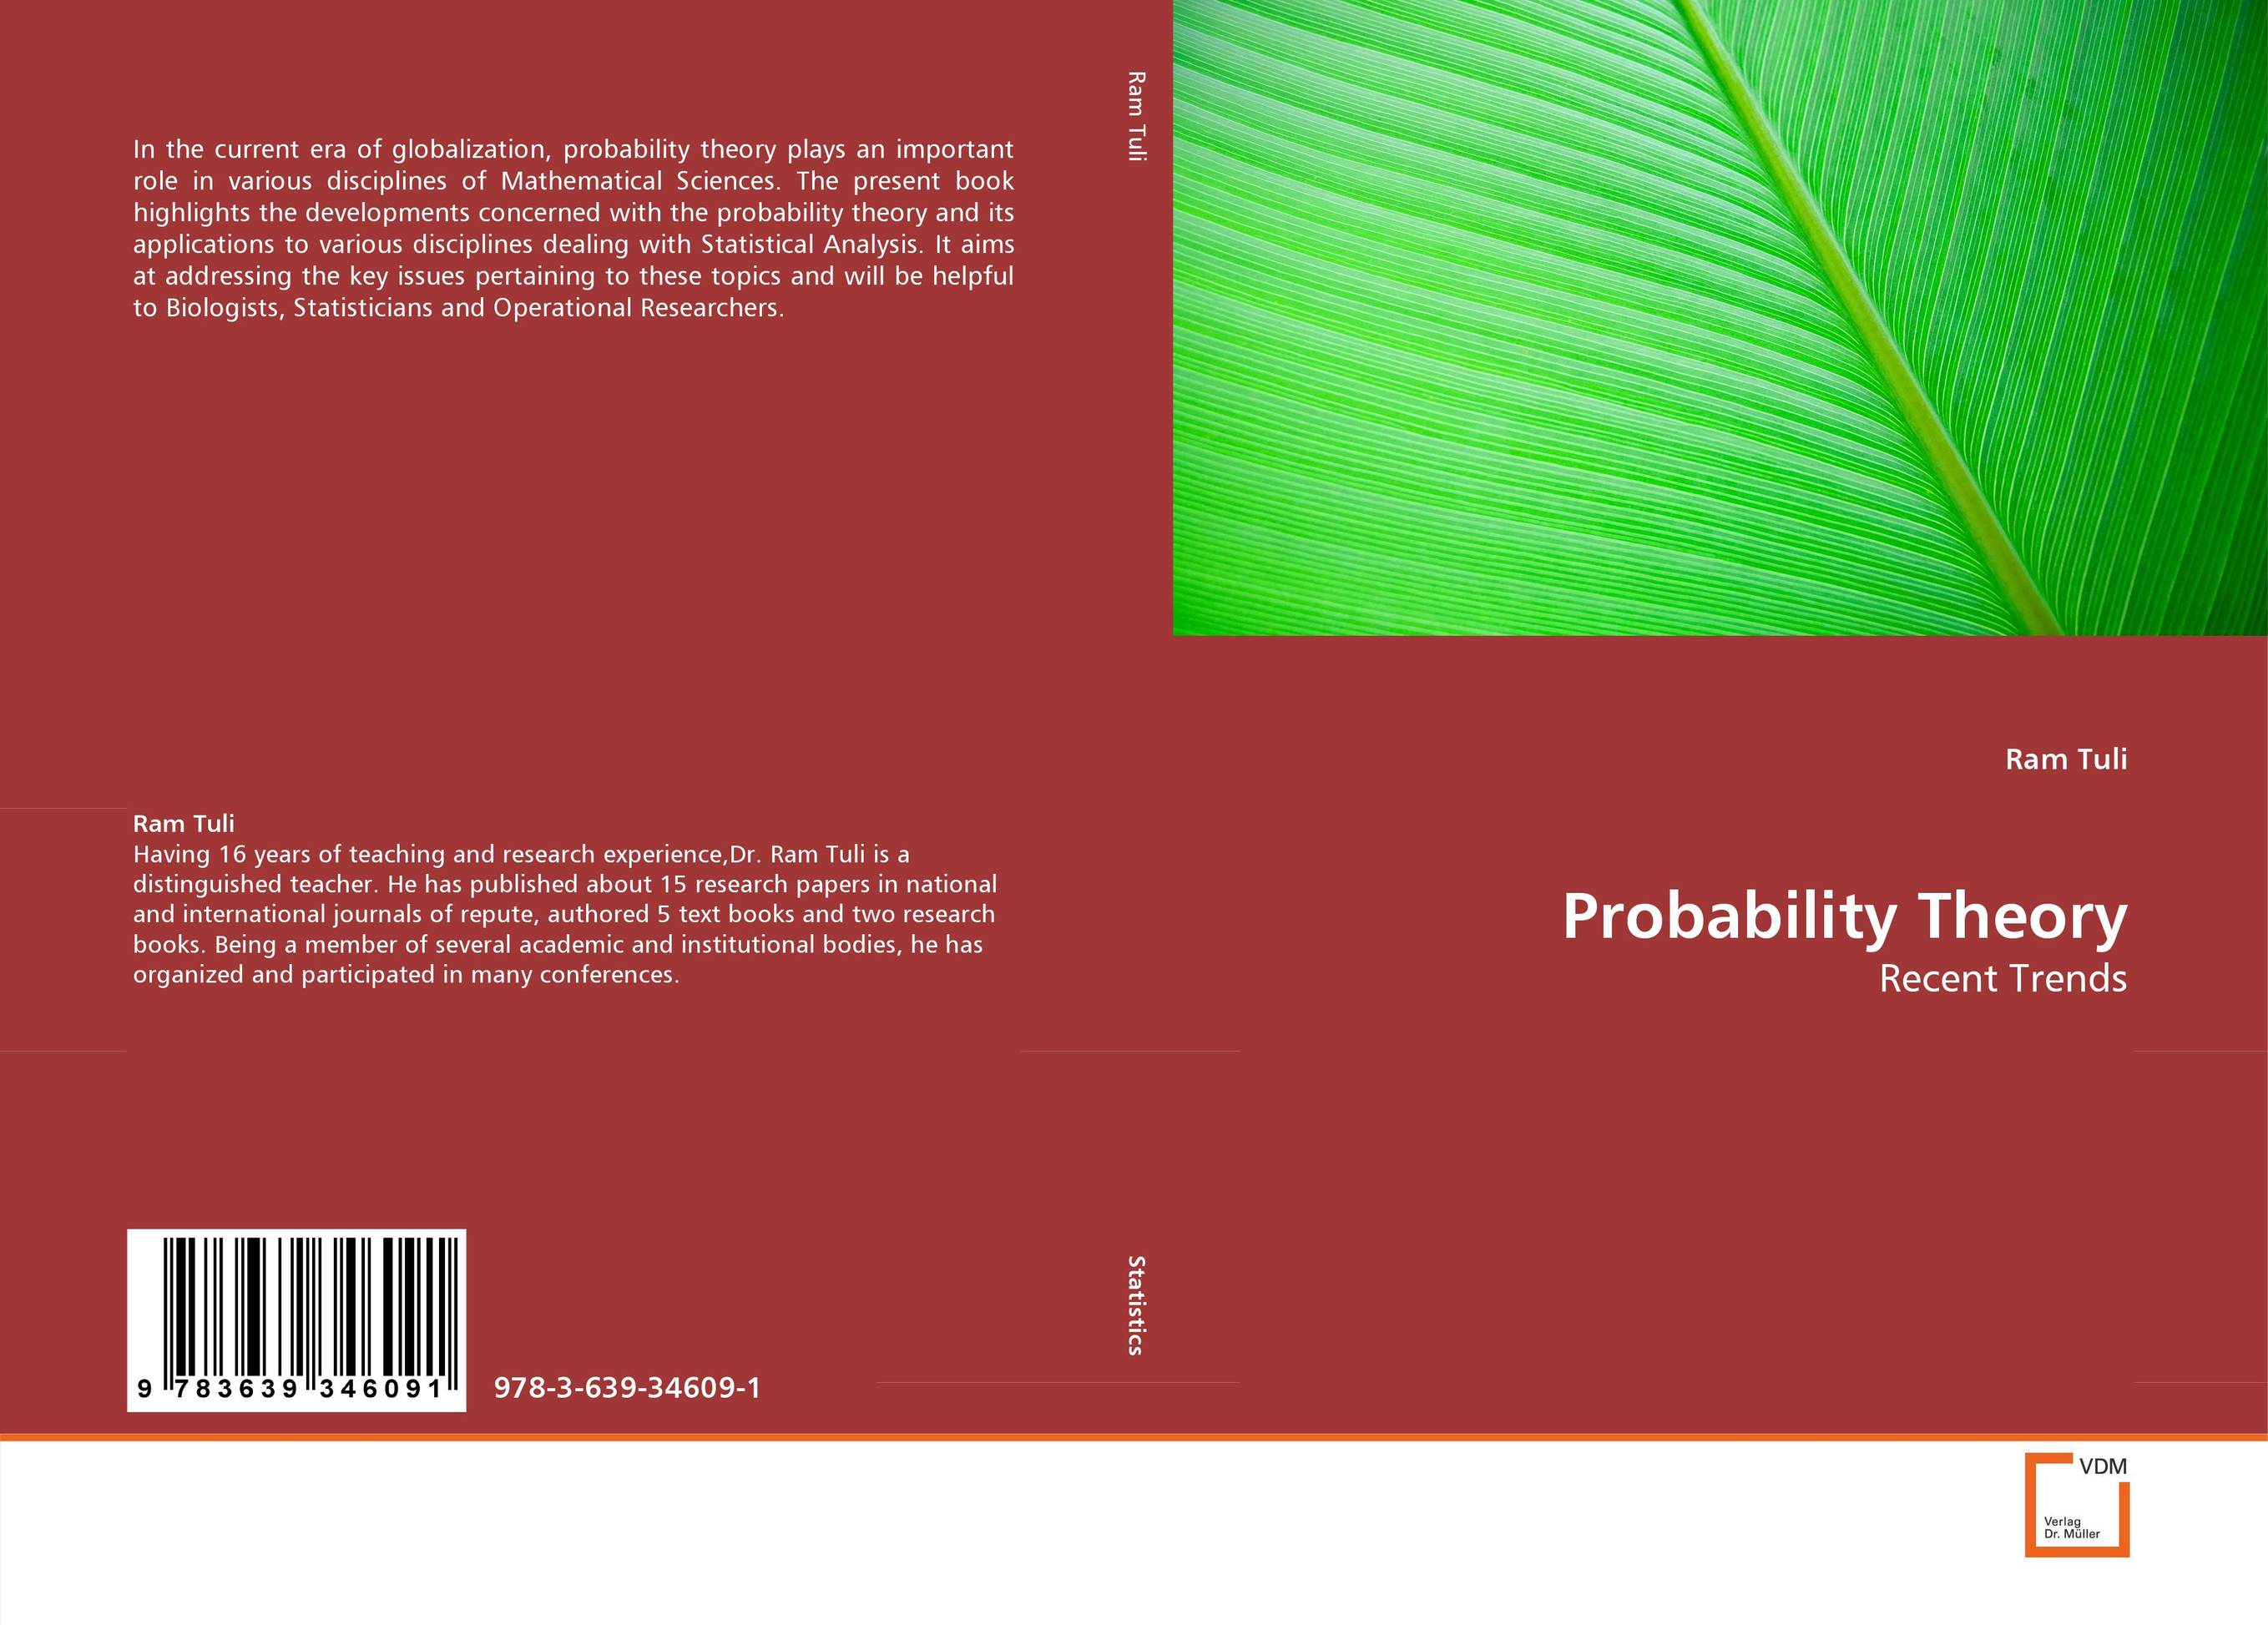 Probability Theory dongcheol kim modern portfolio theory foundations analysis and new developments